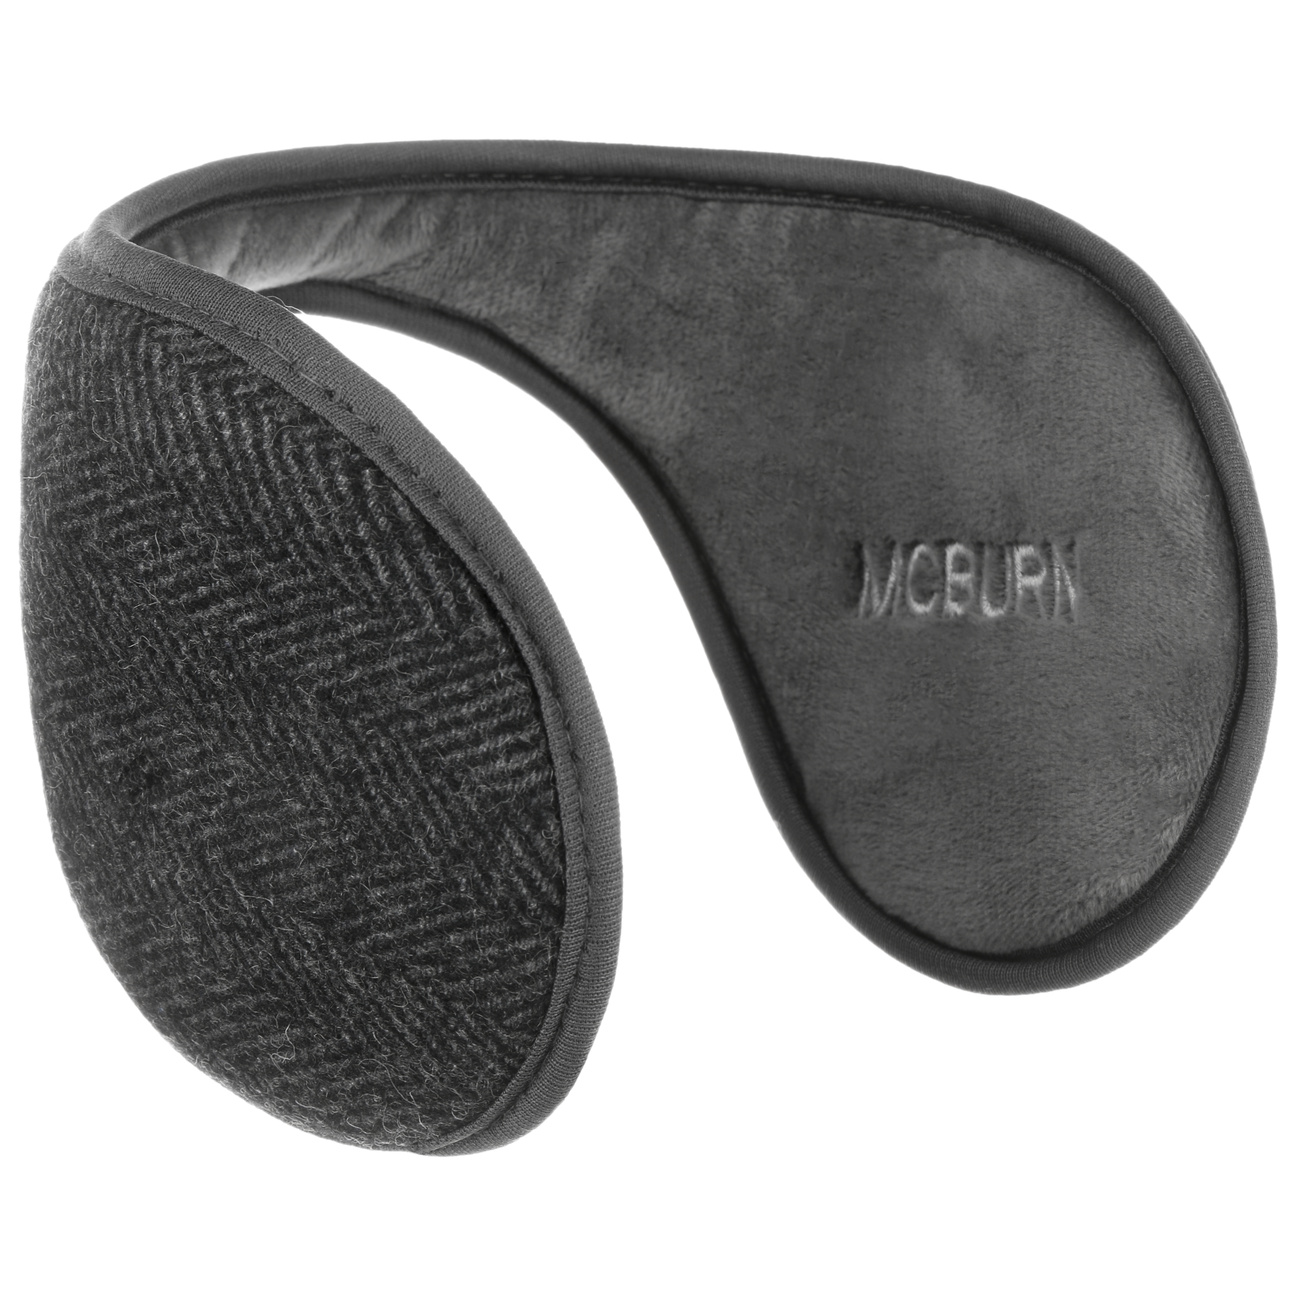 Earband by McBURN  orejeras